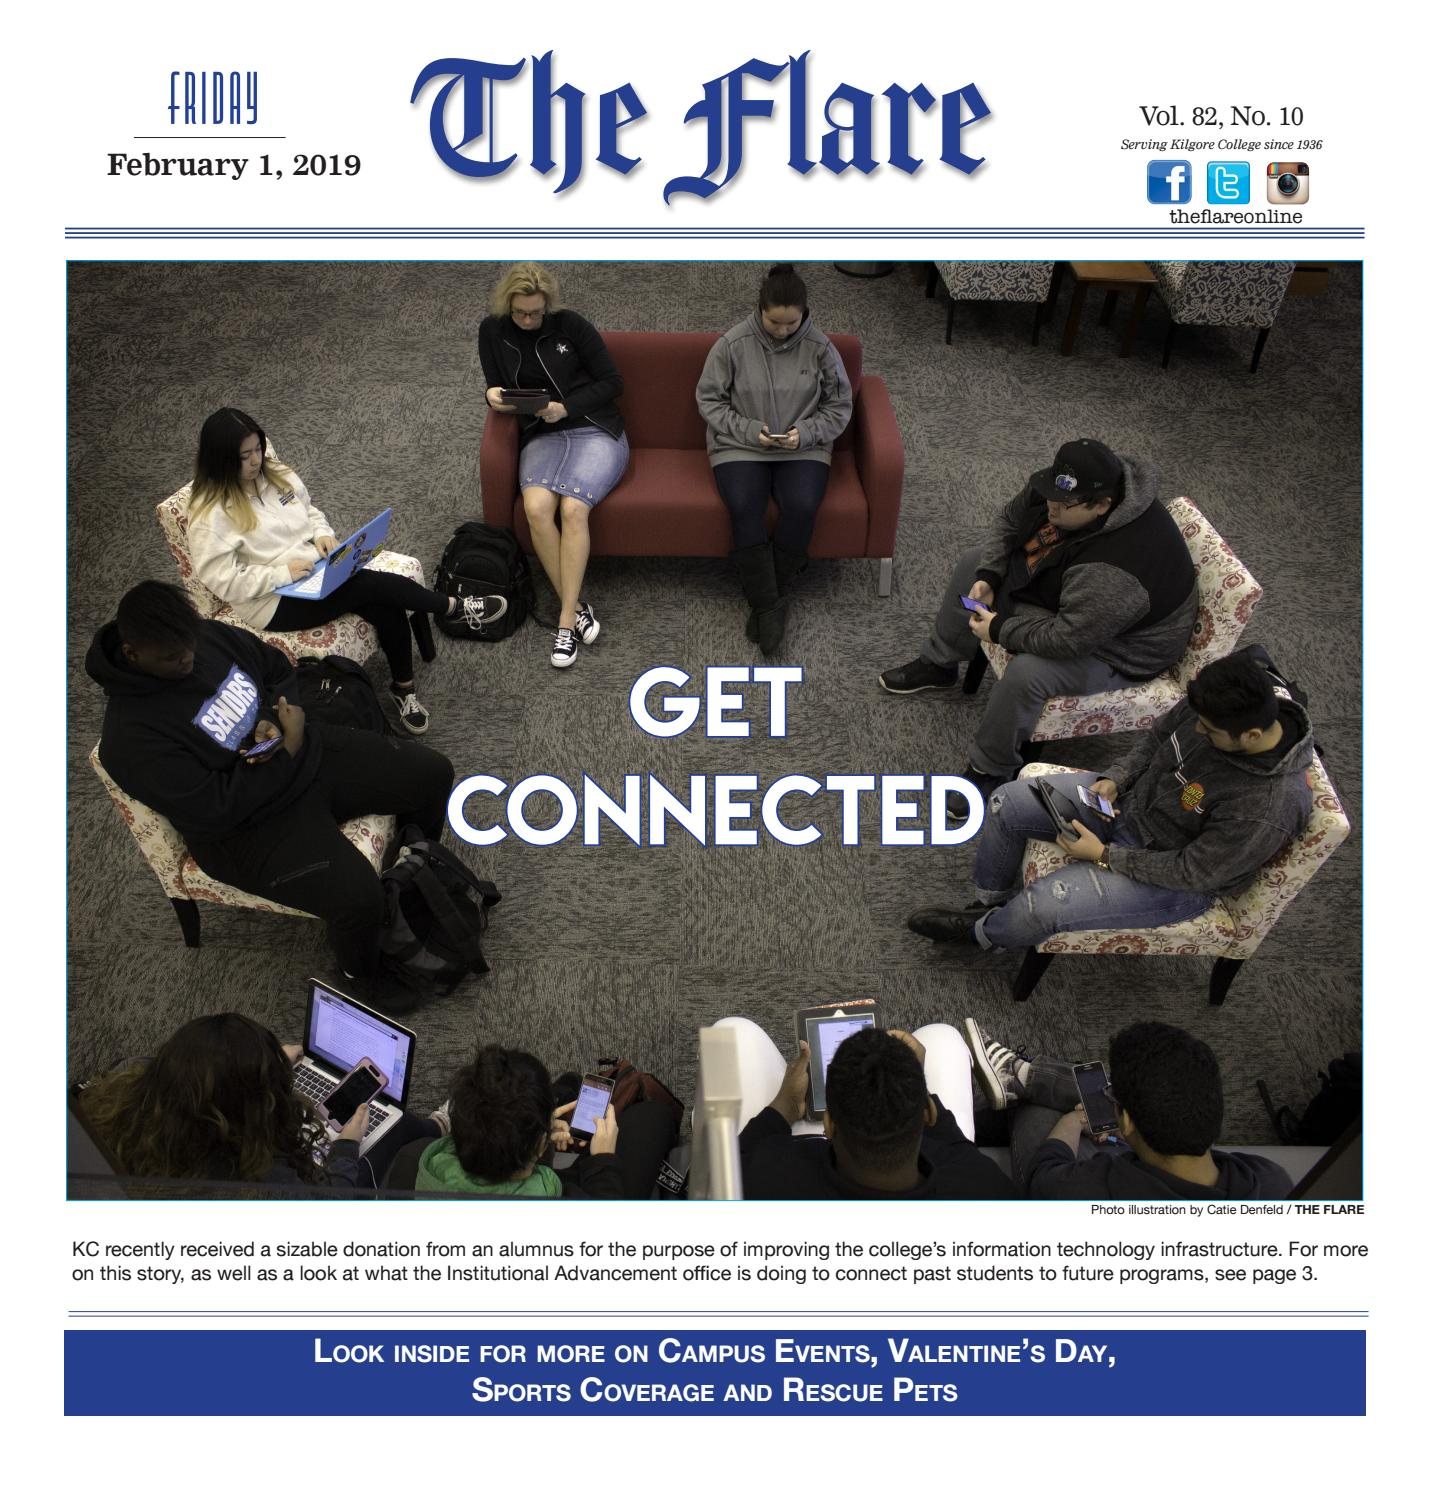 6a1ab7fd92 The Flare, Issue 10 2-1-19 by The Flare - issuu